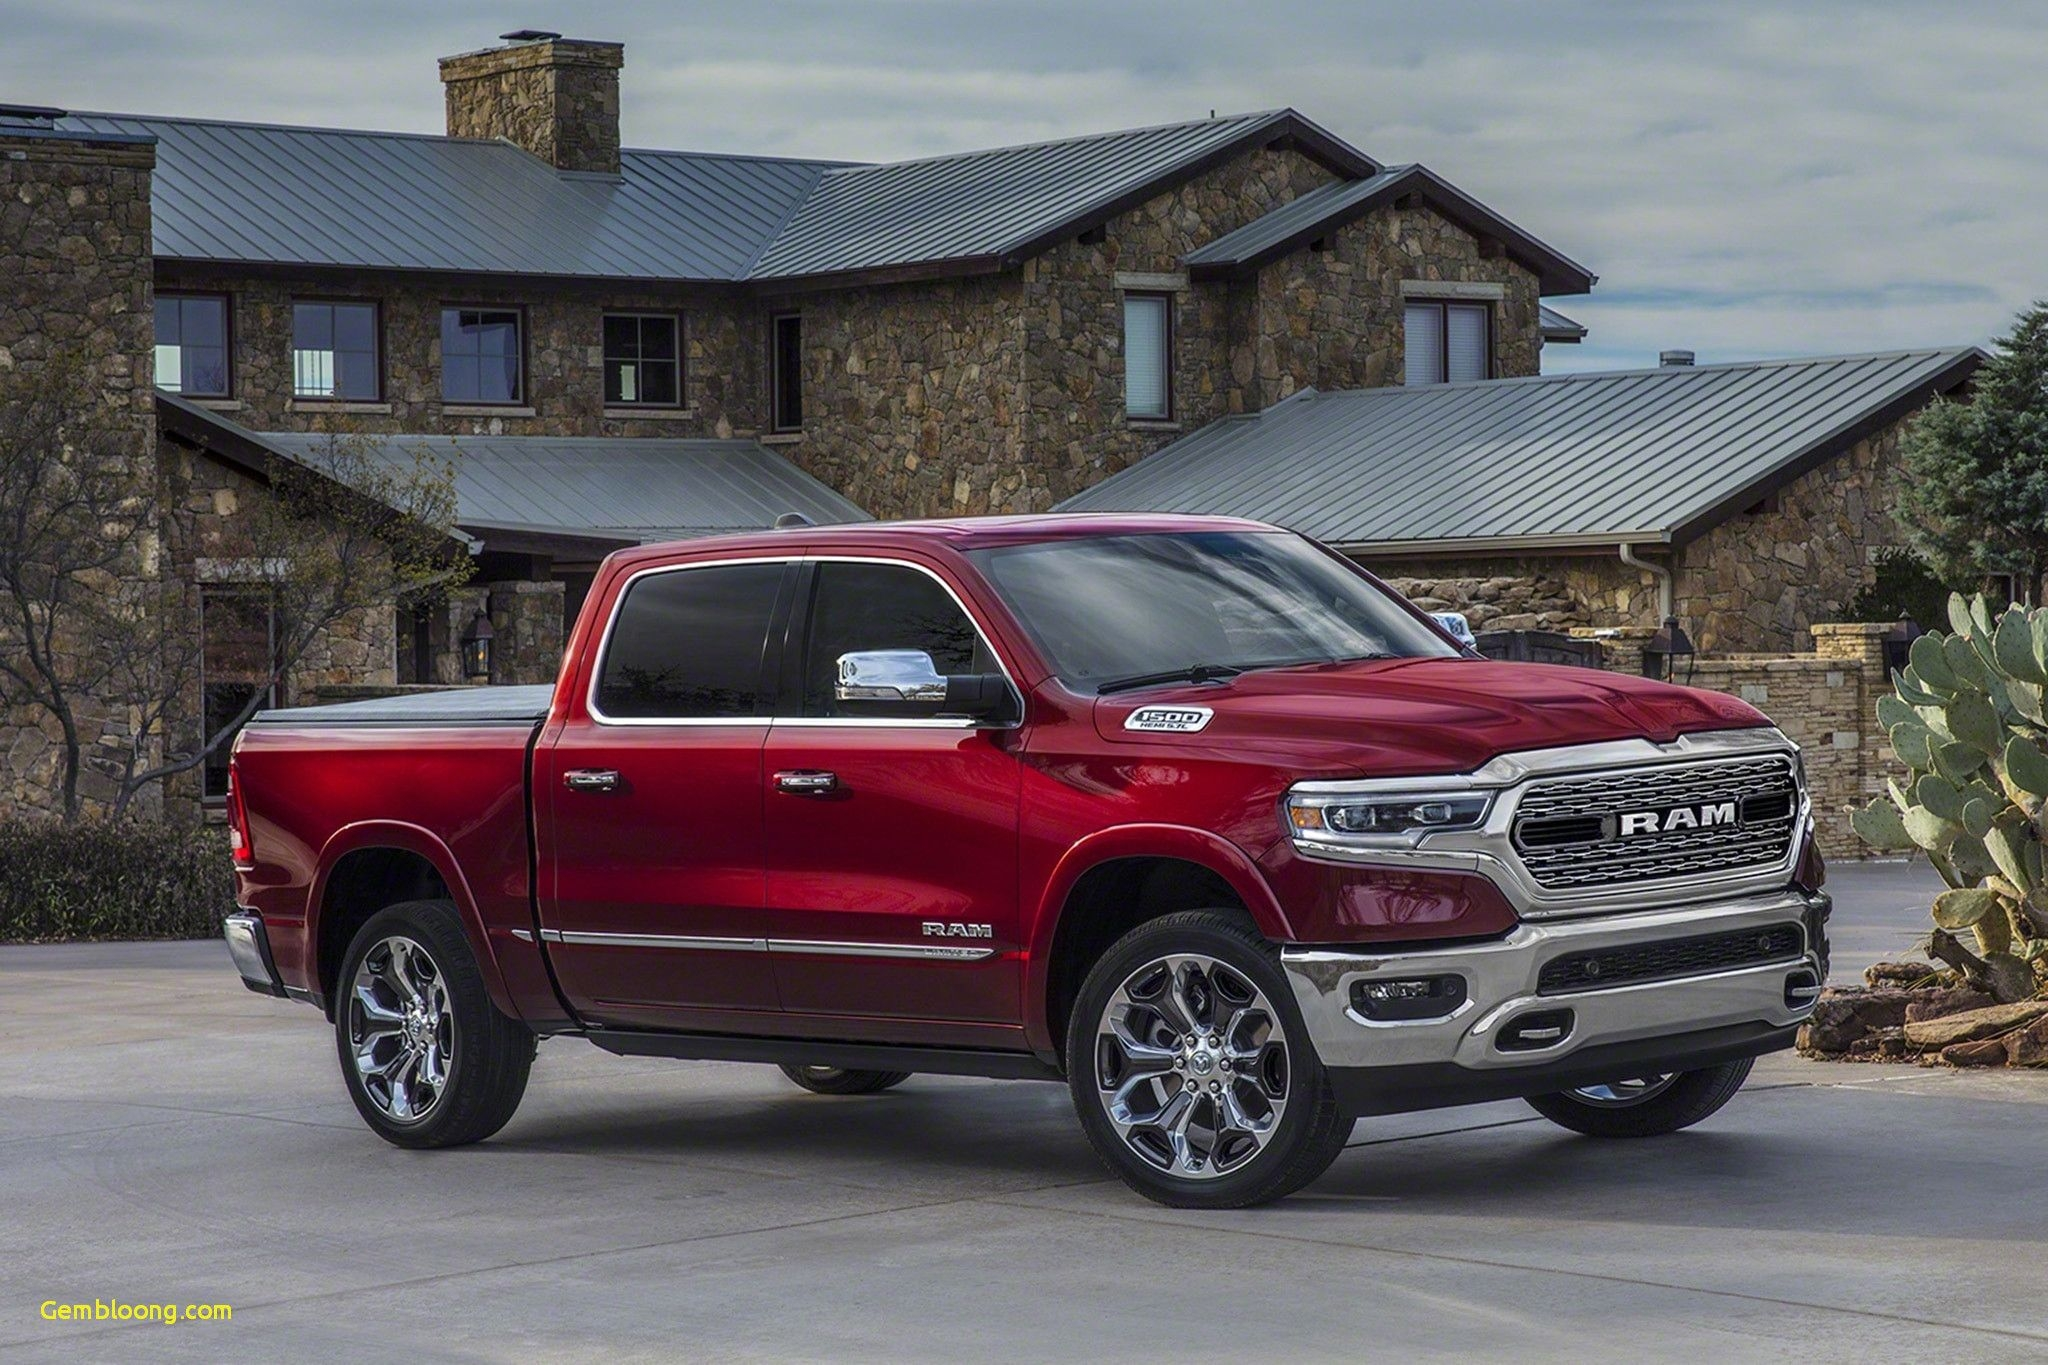 18 The Best 2020 Ram 1500 Hellcat Diesel Release Date